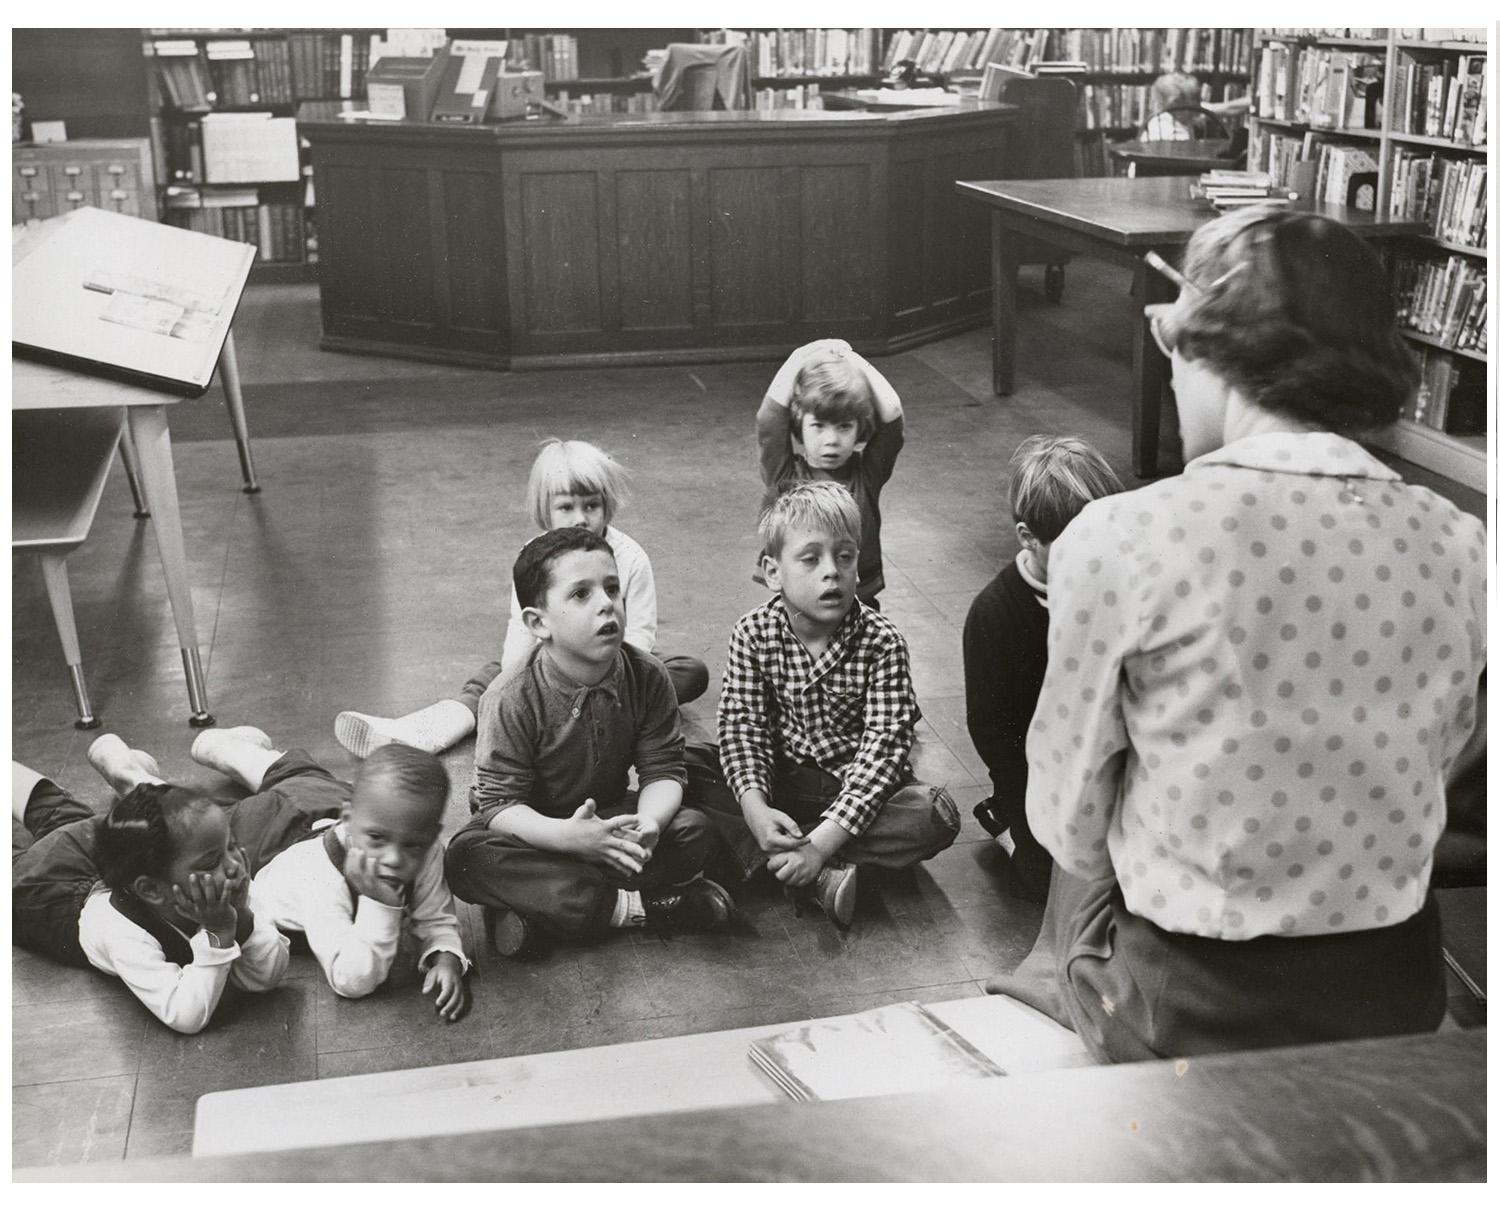 historic photo of children at story time